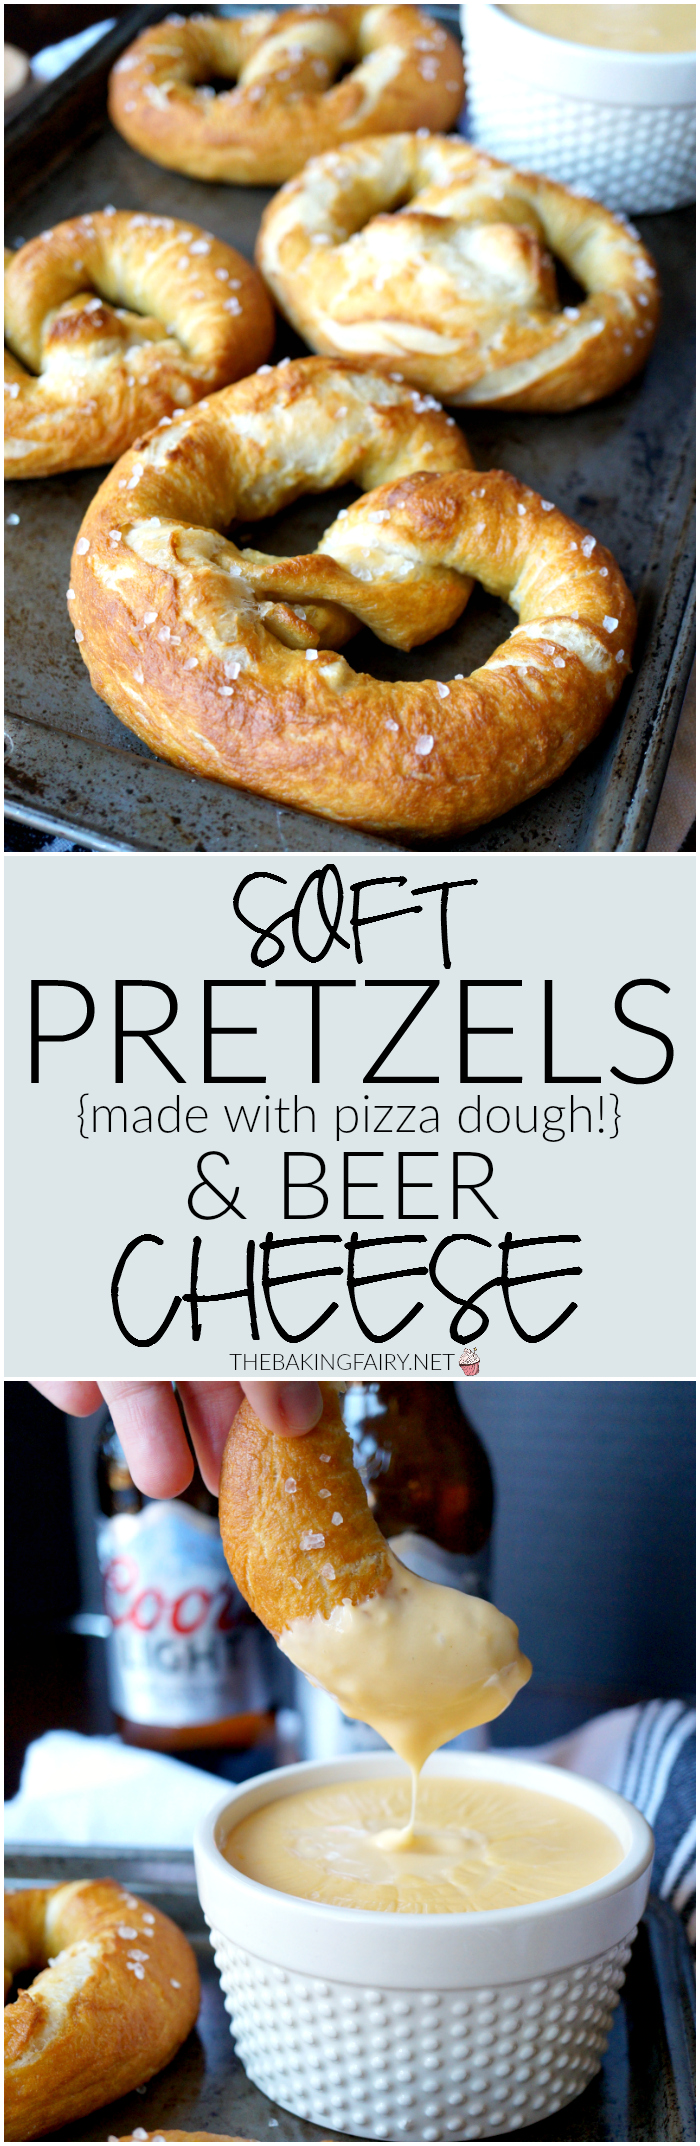 soft pretzels with beer cheese | The Baking Fairy